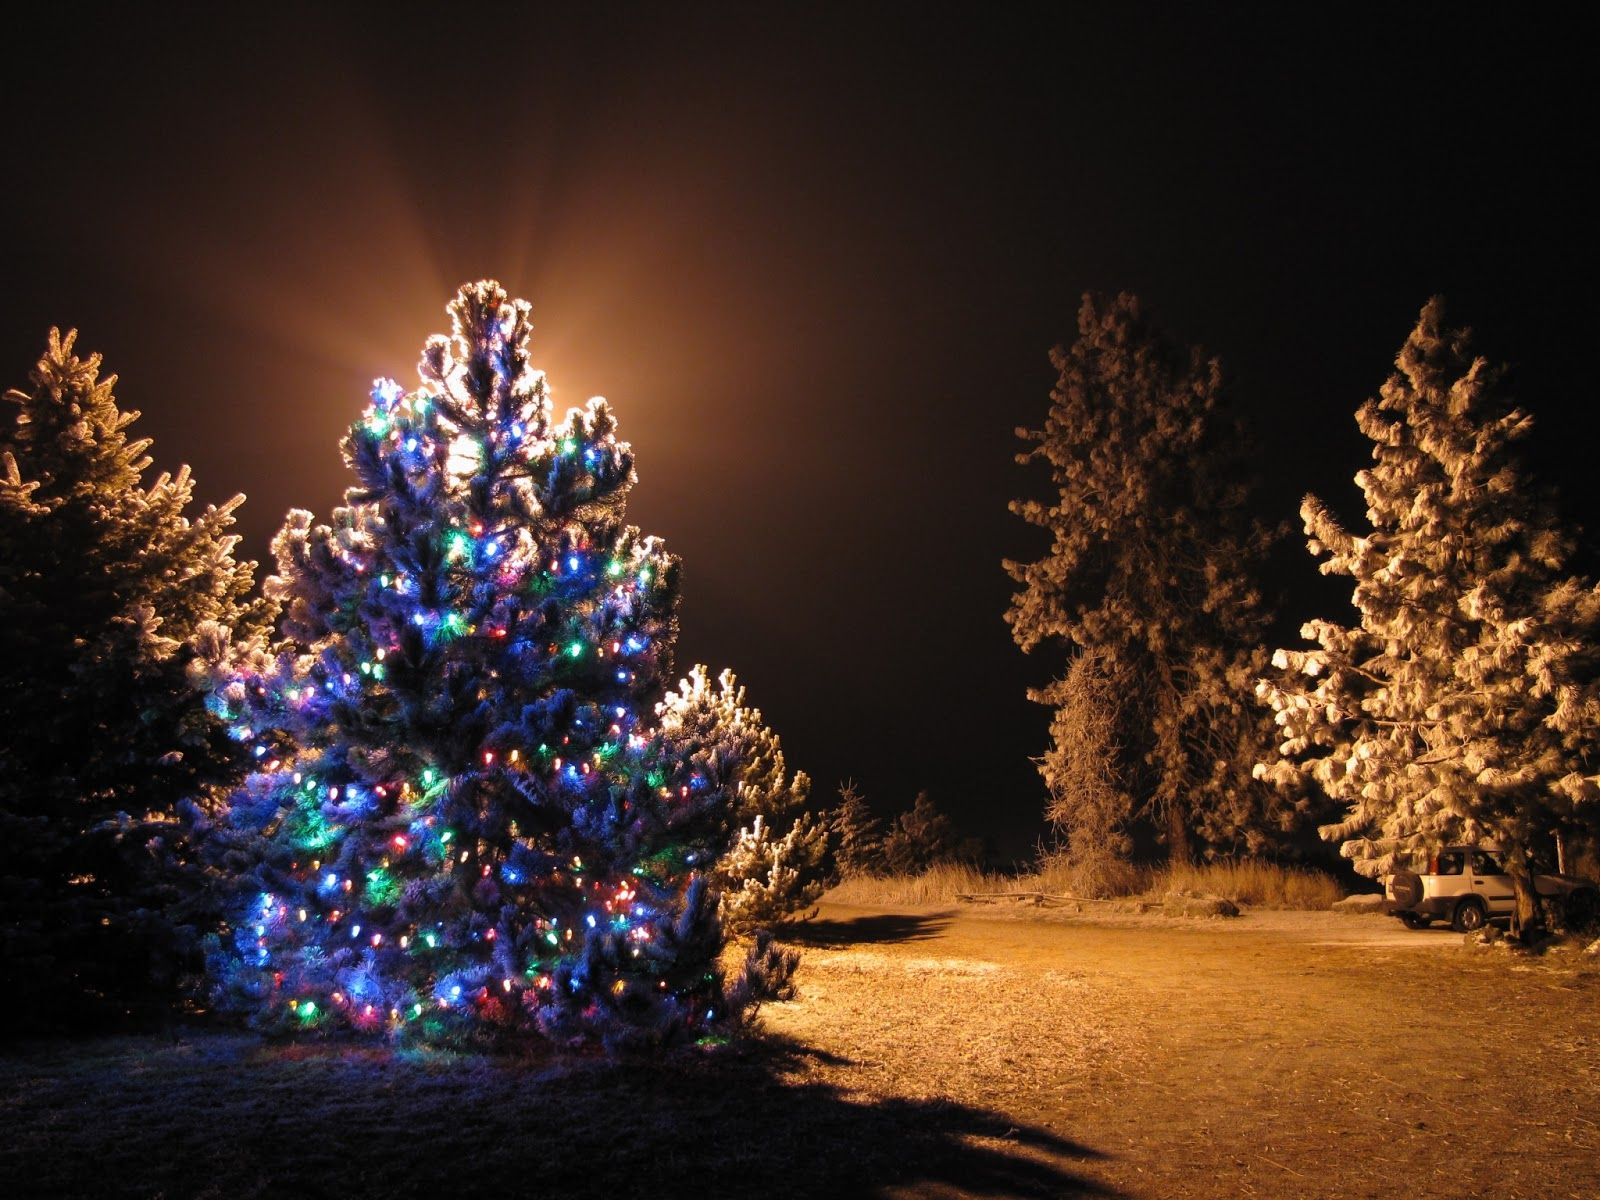 This post contains some of the best collection of outdoor this post contains some of the best collection of outdoor christmas tree images mozeypictures Choice Image